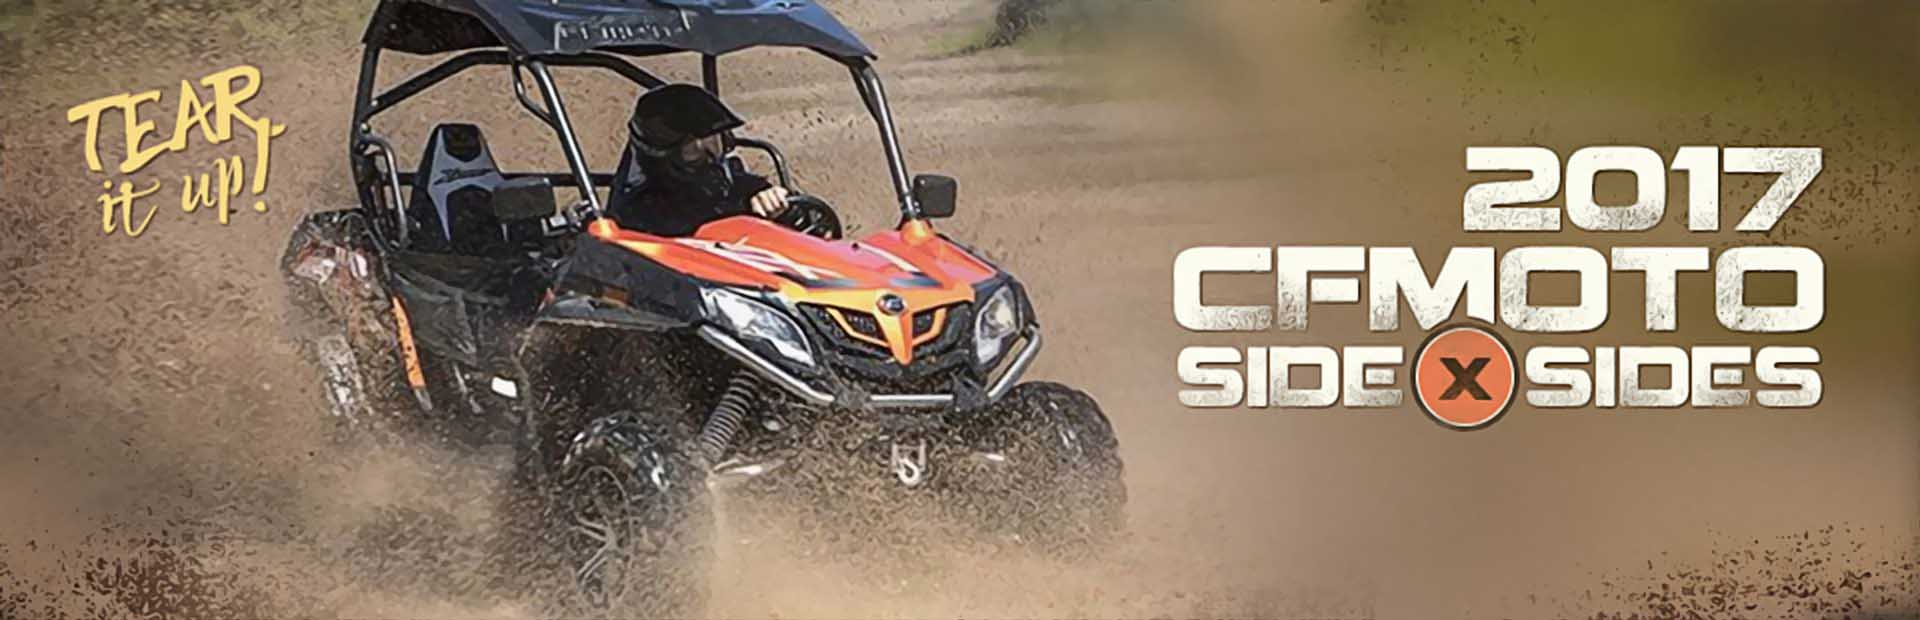 2017 CFMOTO side x sides. Click here to view the models